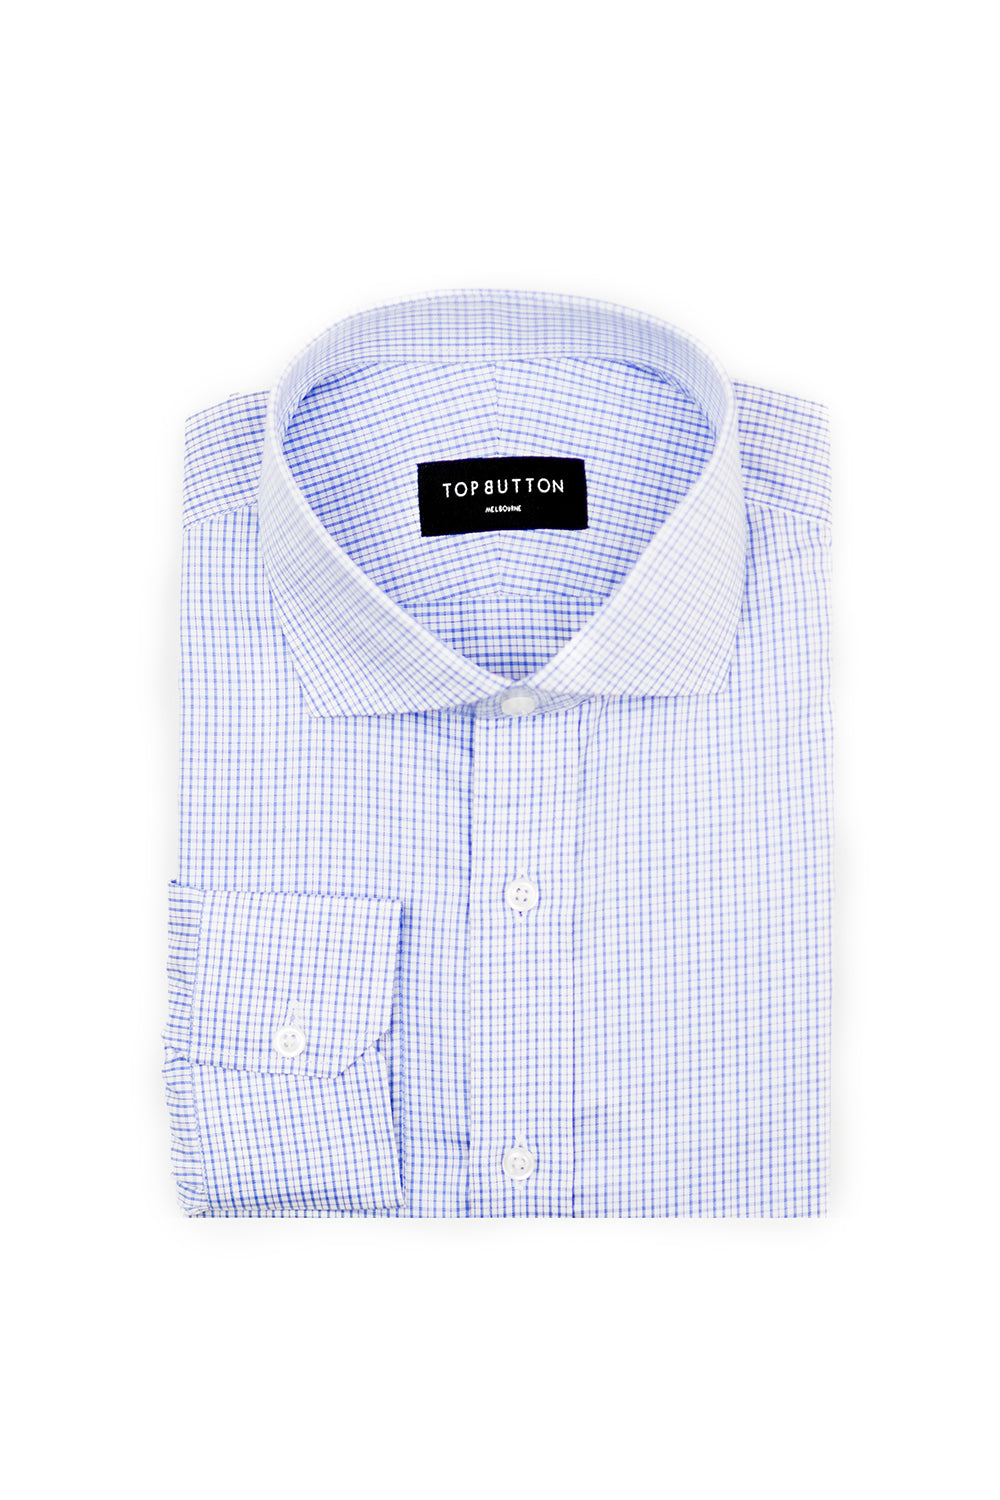 Aran – Blue - Top Button Custom Shirts Melbourne